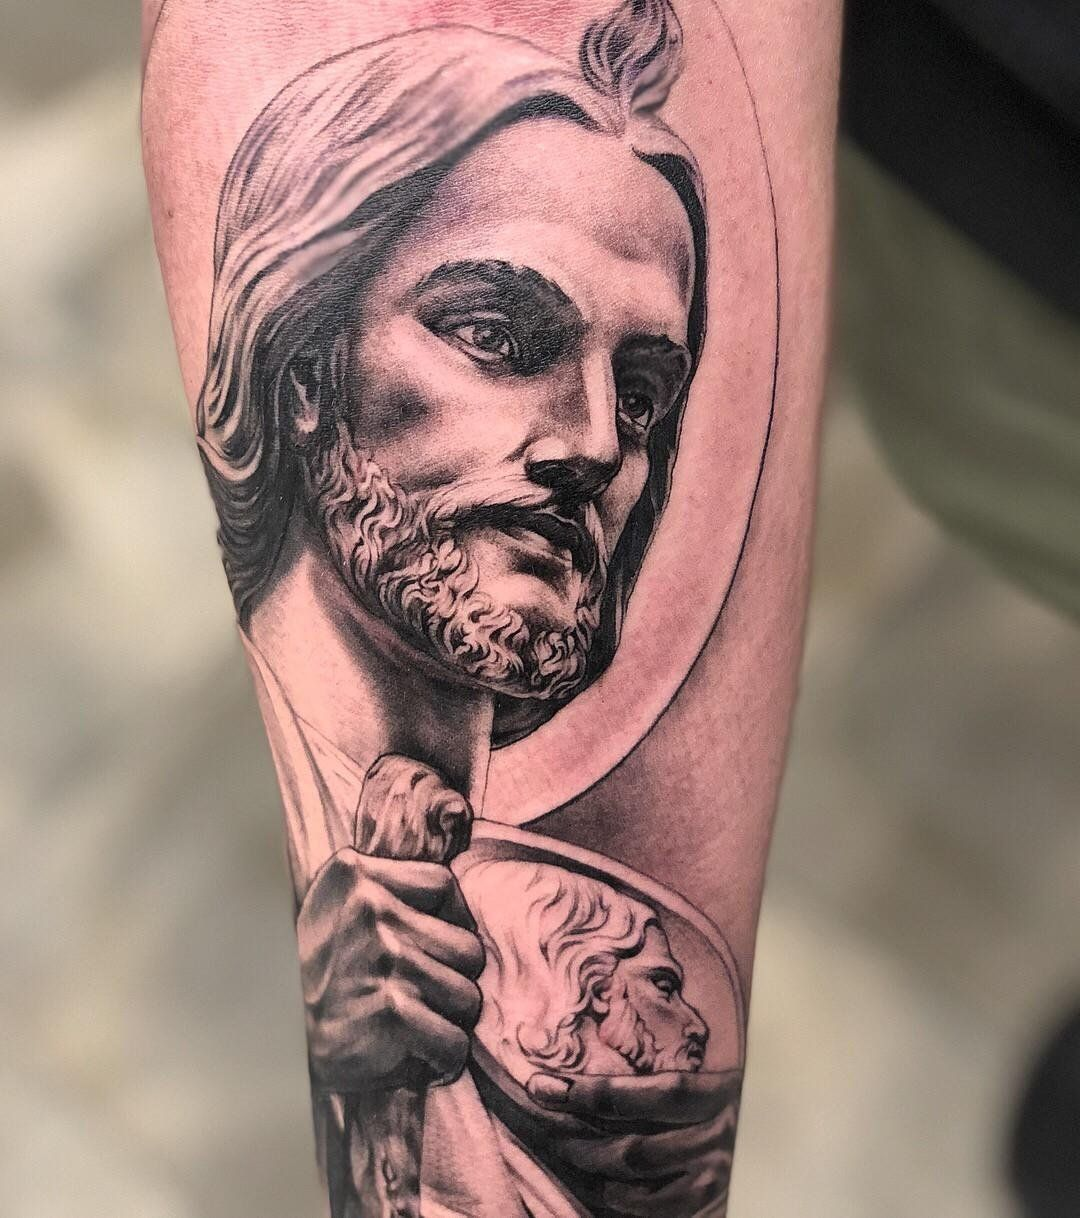 San Judas Tadeo Tattoos Designs Wwwtopsimagescom